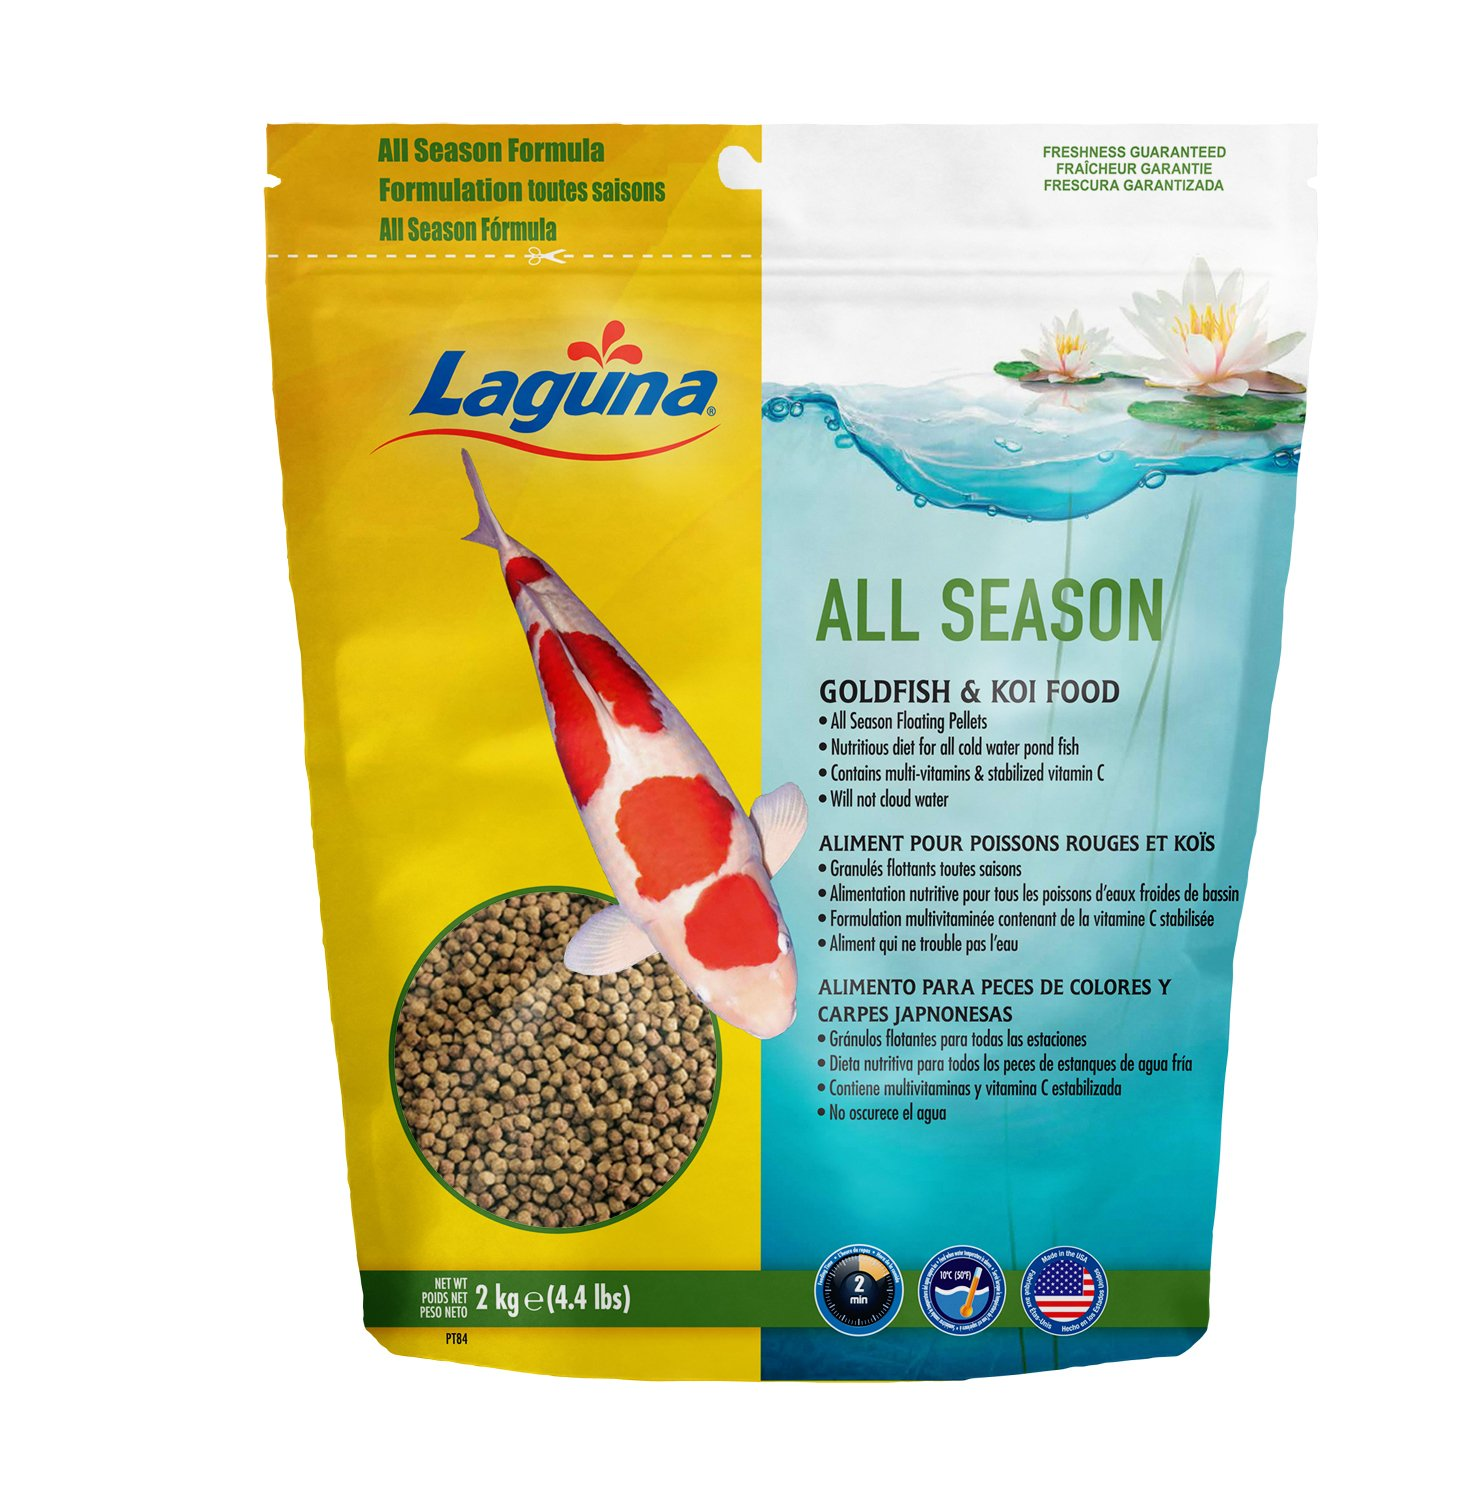 Laguna All Season Goldfish & Koi Floating Food, 4.4 Lbs by Laguna